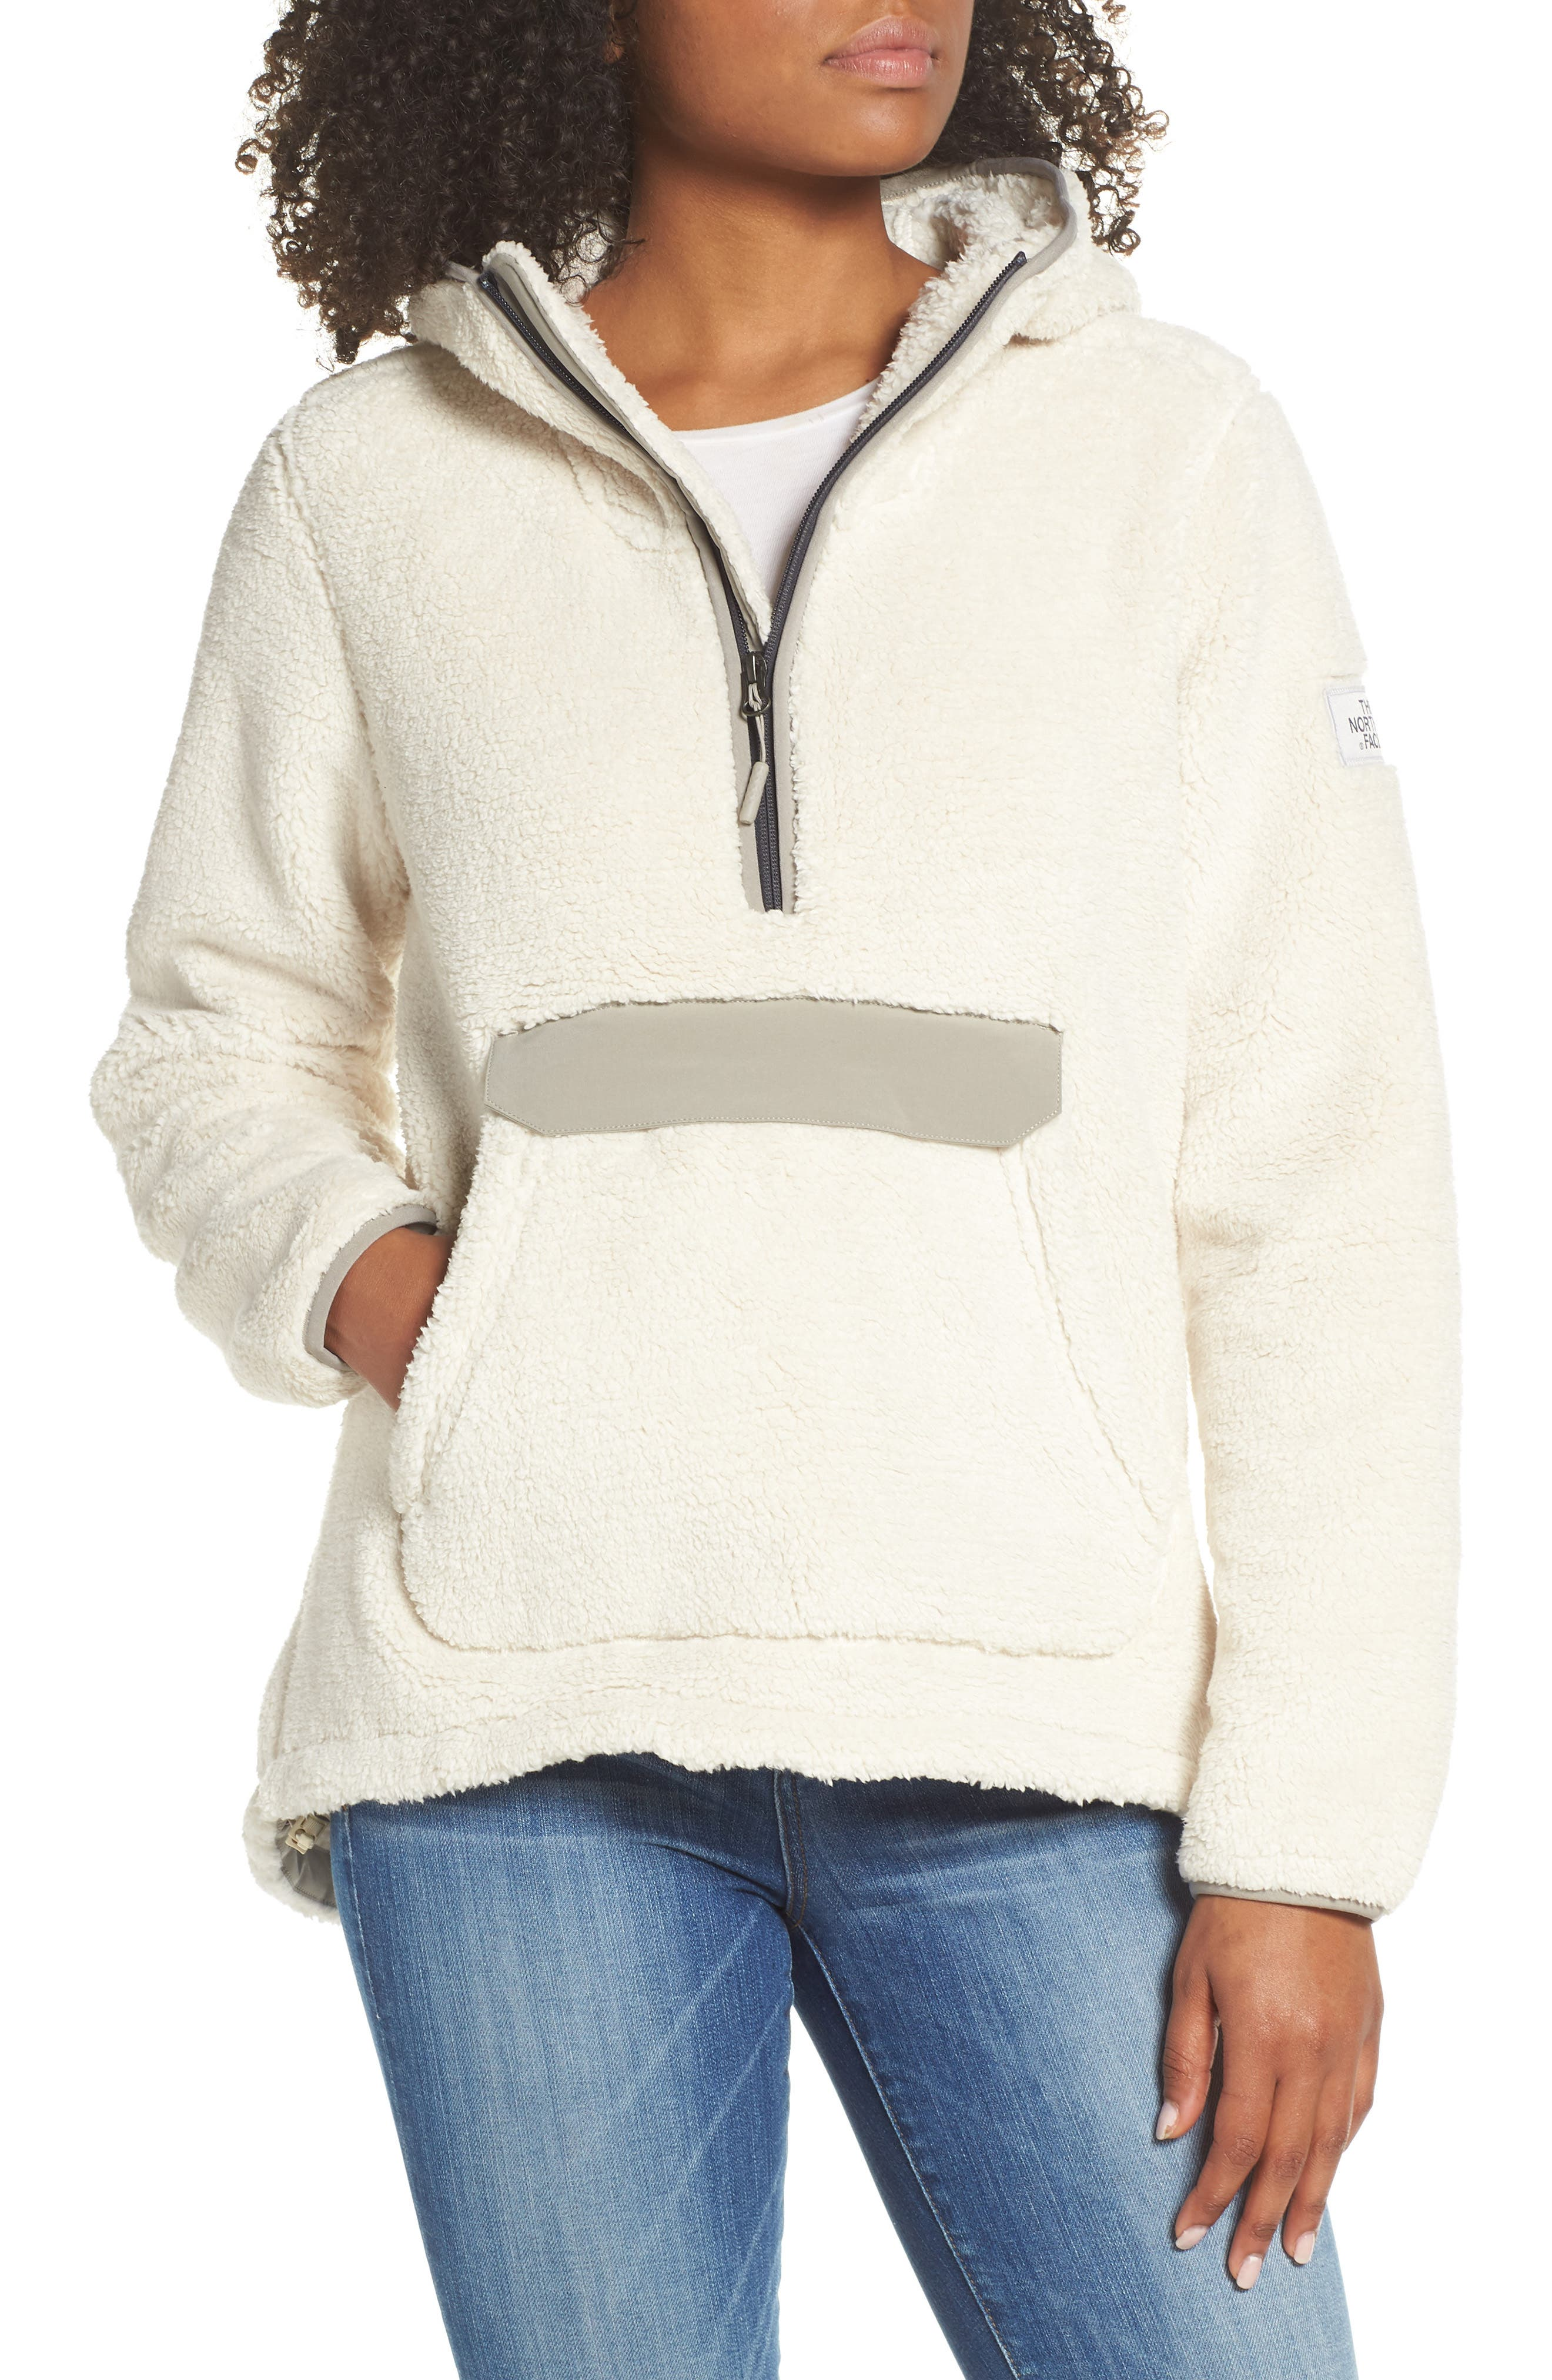 THE NORTH FACE Campshire High Pile Fleece Pullover Hoodie, Main, color, VINTAGE WHITE/ GREY